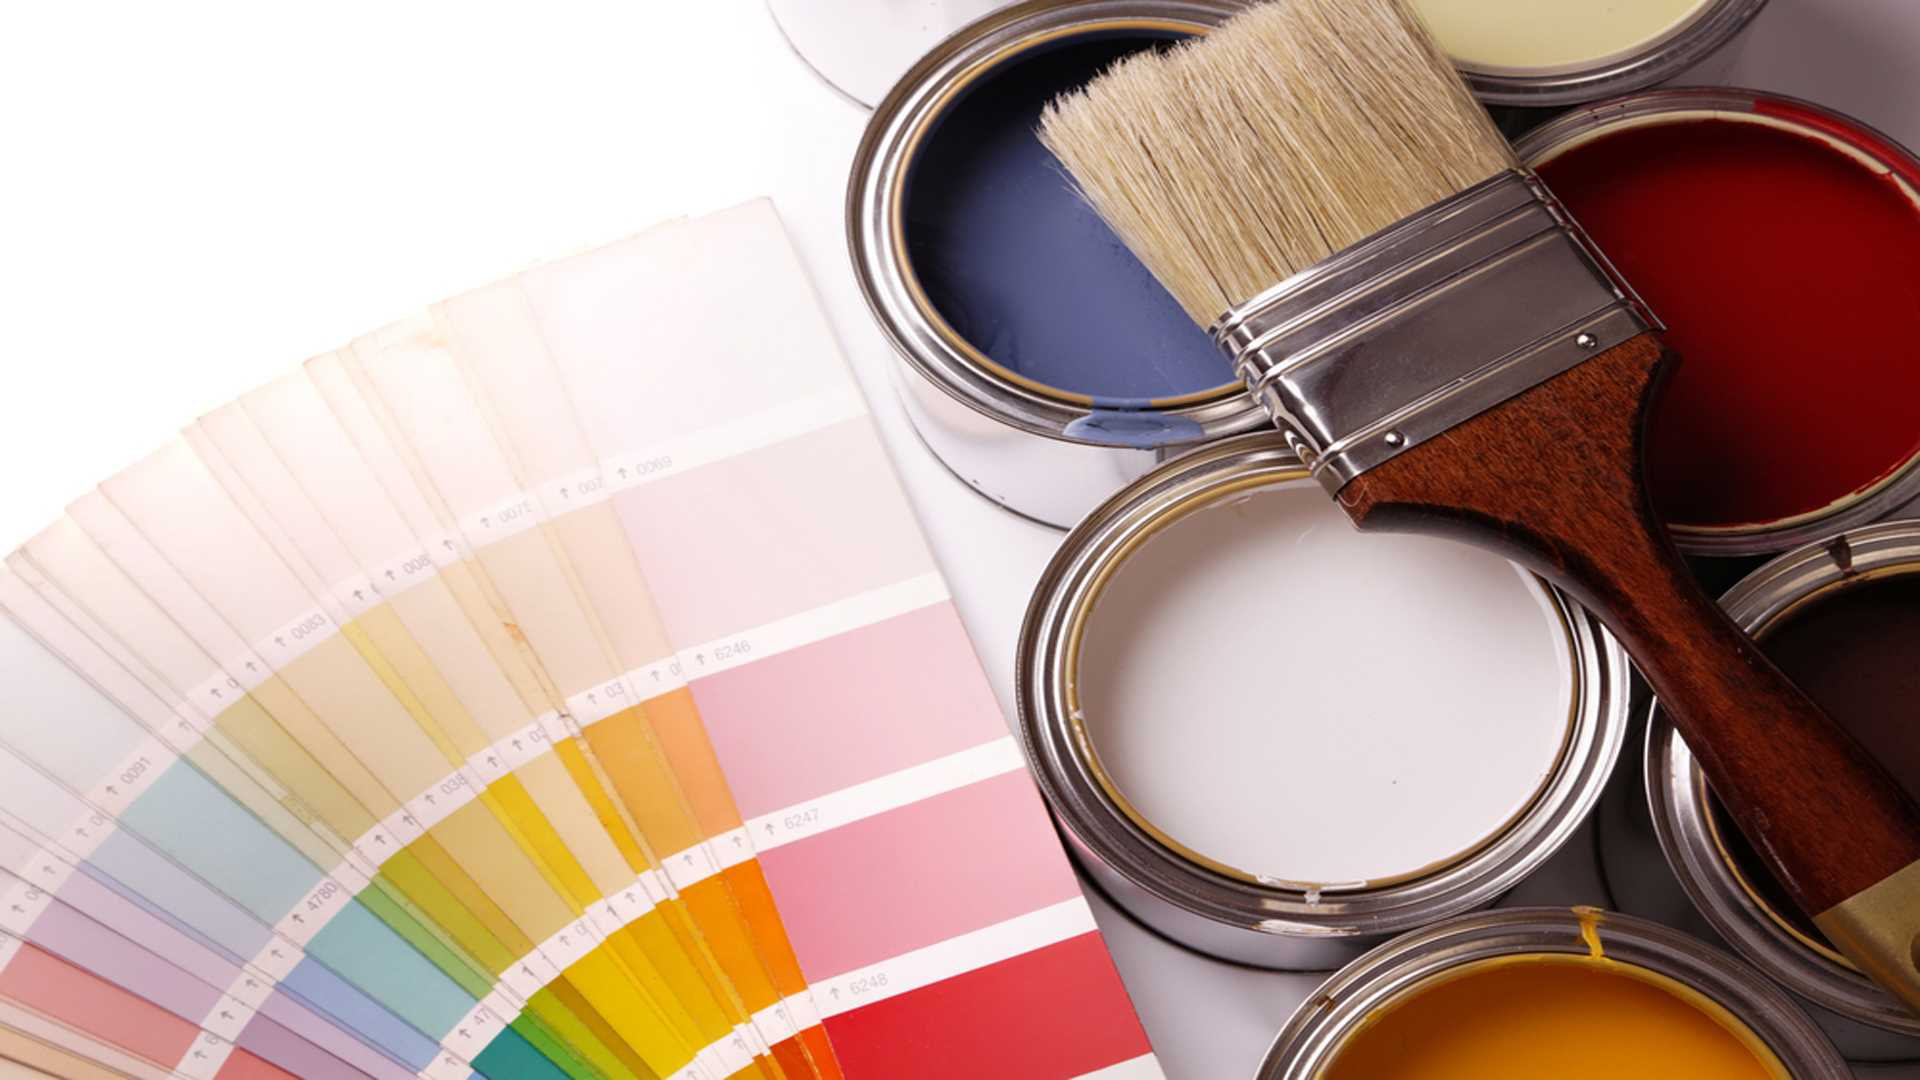 Paint Colors With Paint Cans And A Paint Brush Interior and Exterior Home Painting Services Gutter Solutions and Home Improvements